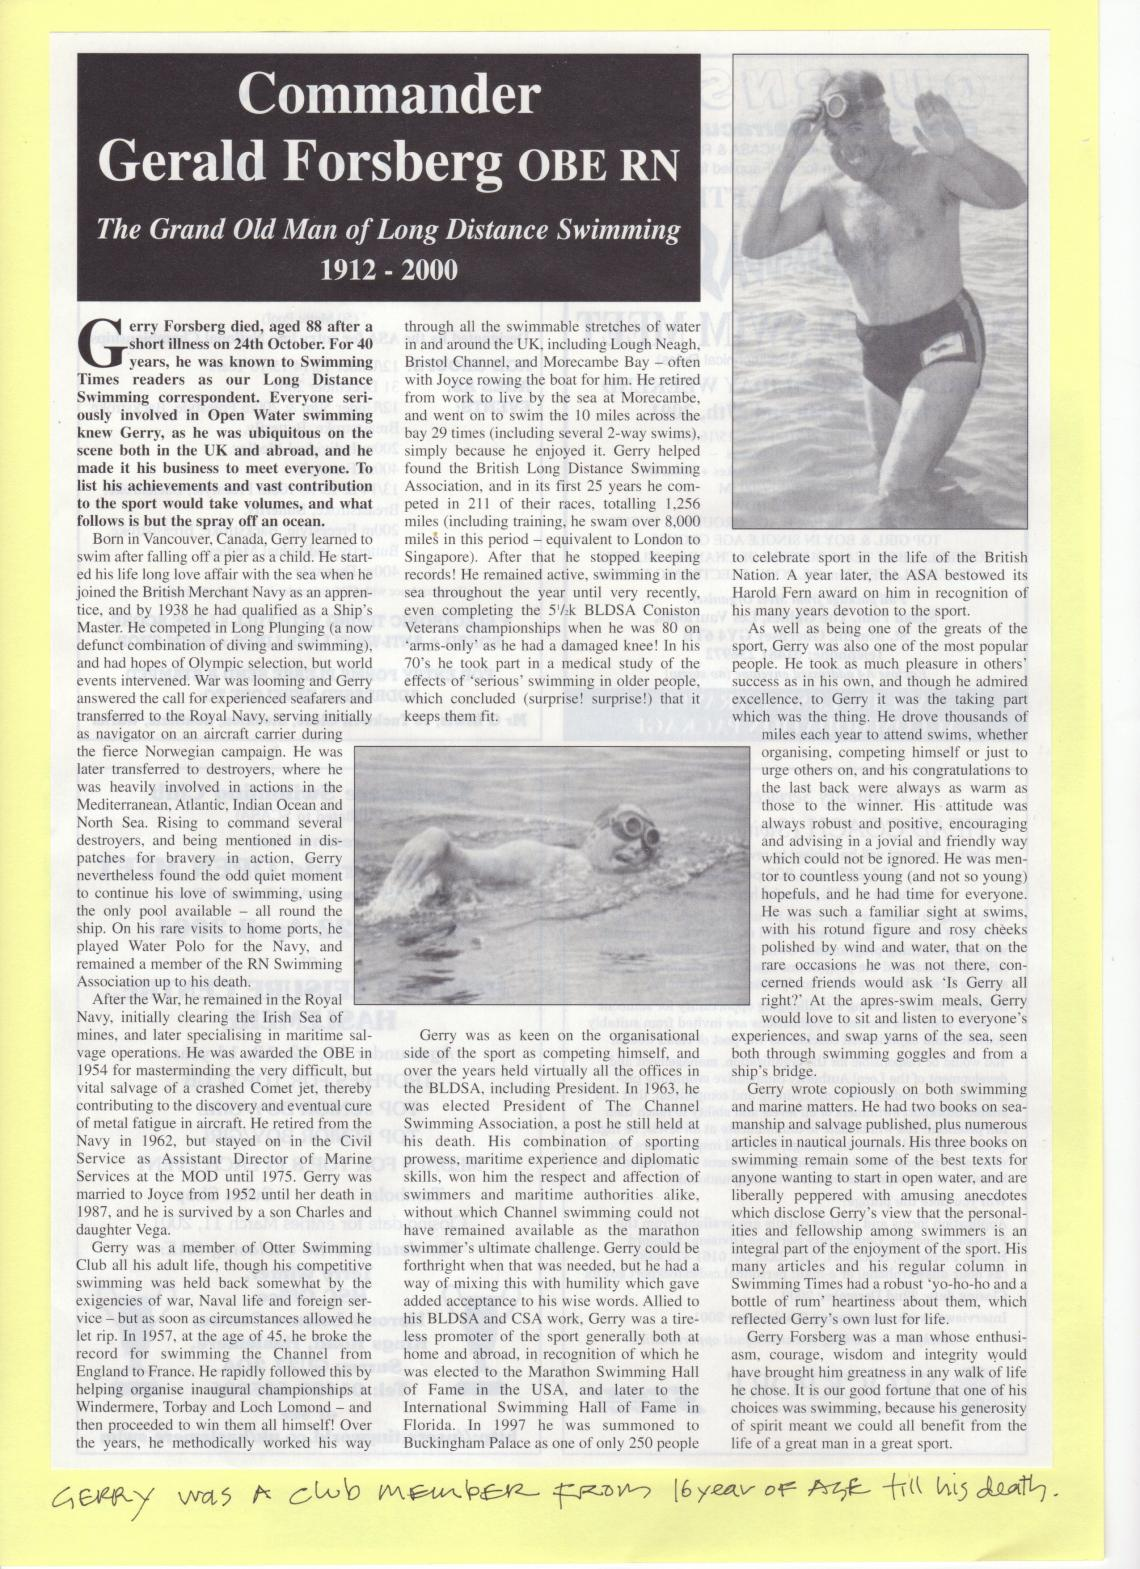 Gerald Forsberg's obituary in the Swimming Times